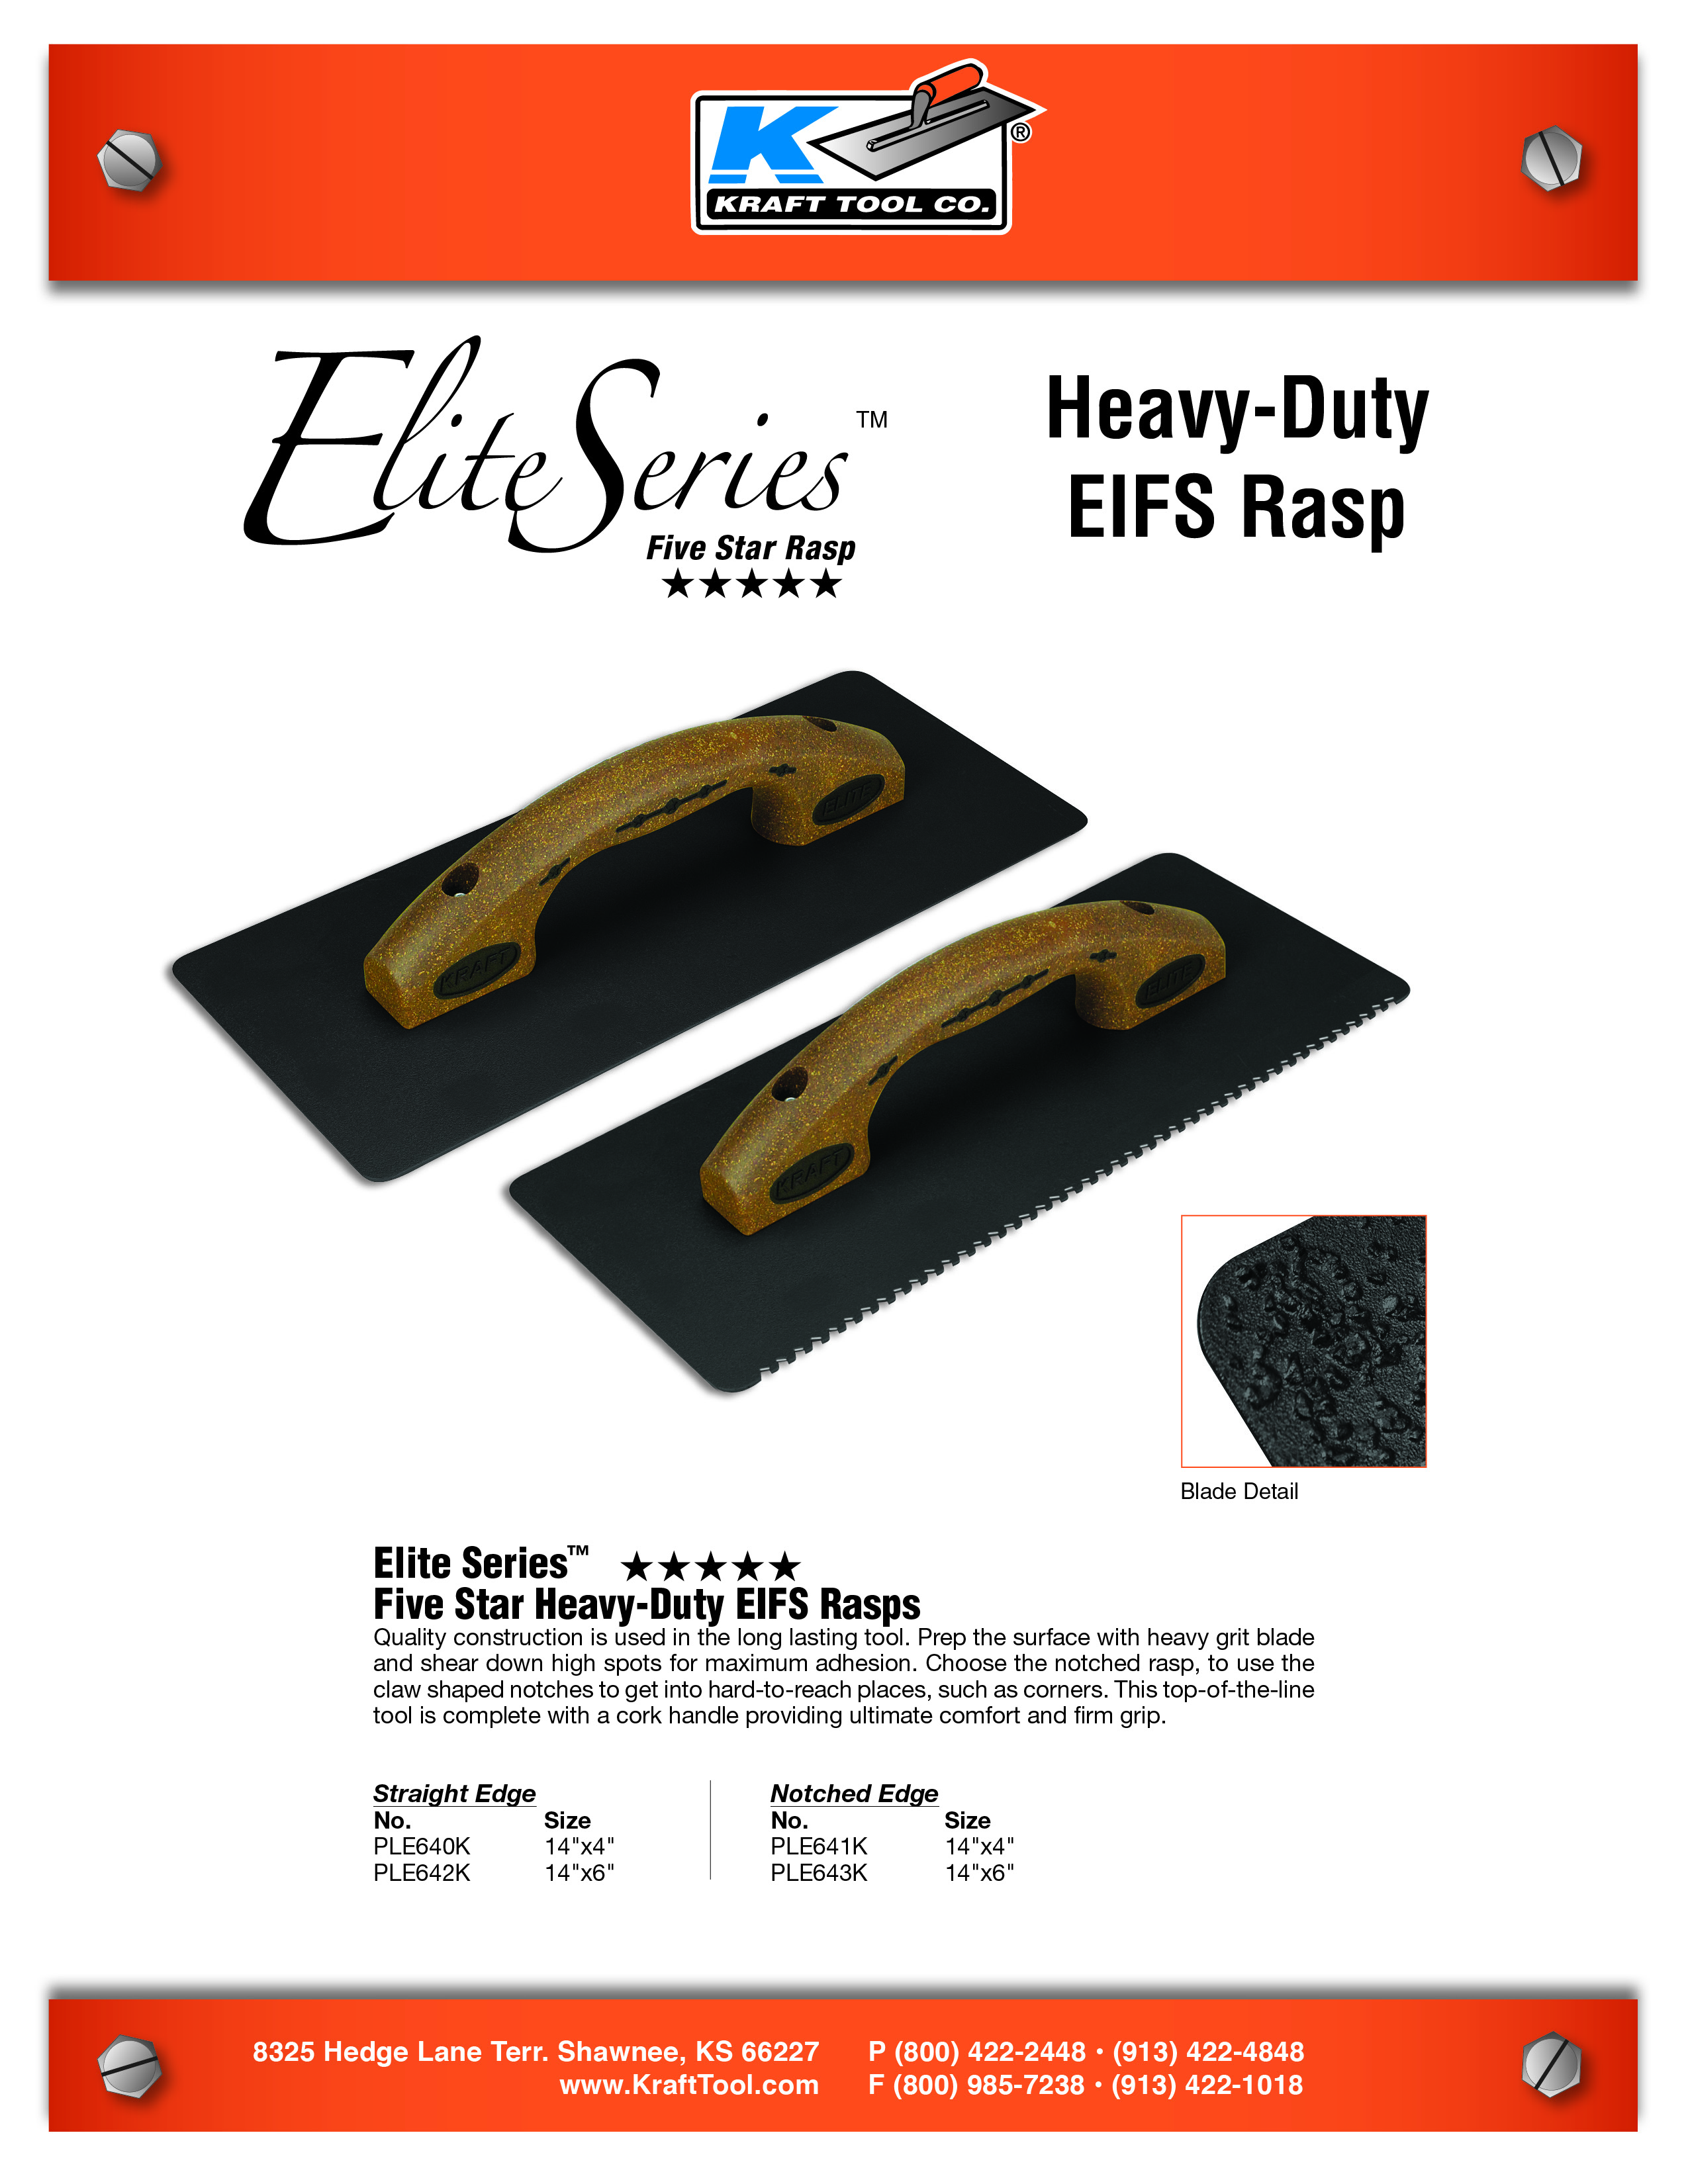 Heavy-Duty EIFS Rasp